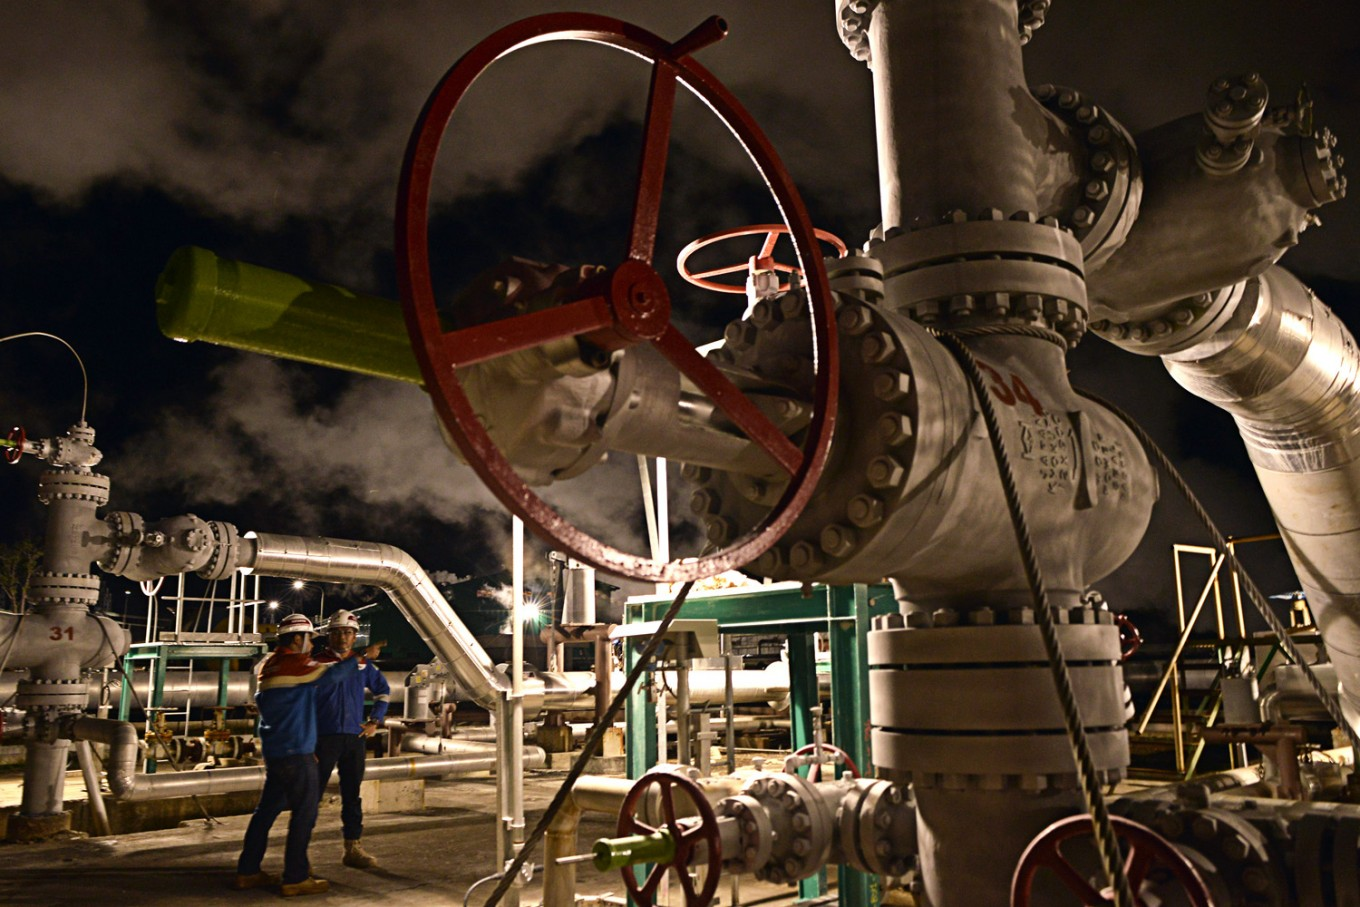 World Bank gives Indonesia $55.25m to develop geothermal power